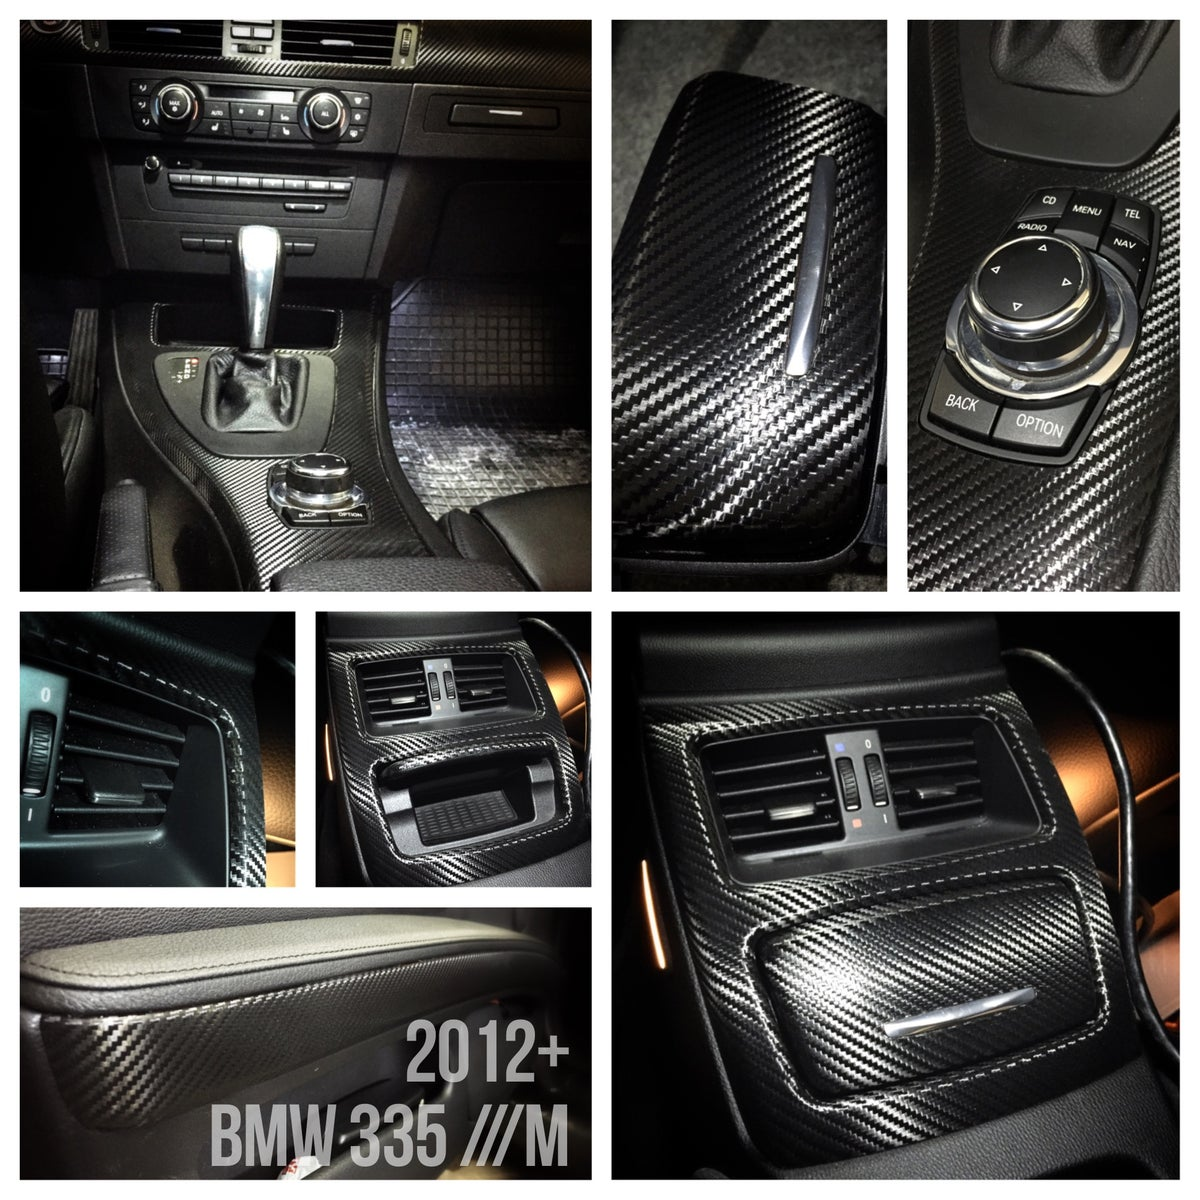 d3k customs bmw m3 335 e92 carbon fiber interior complete. Black Bedroom Furniture Sets. Home Design Ideas